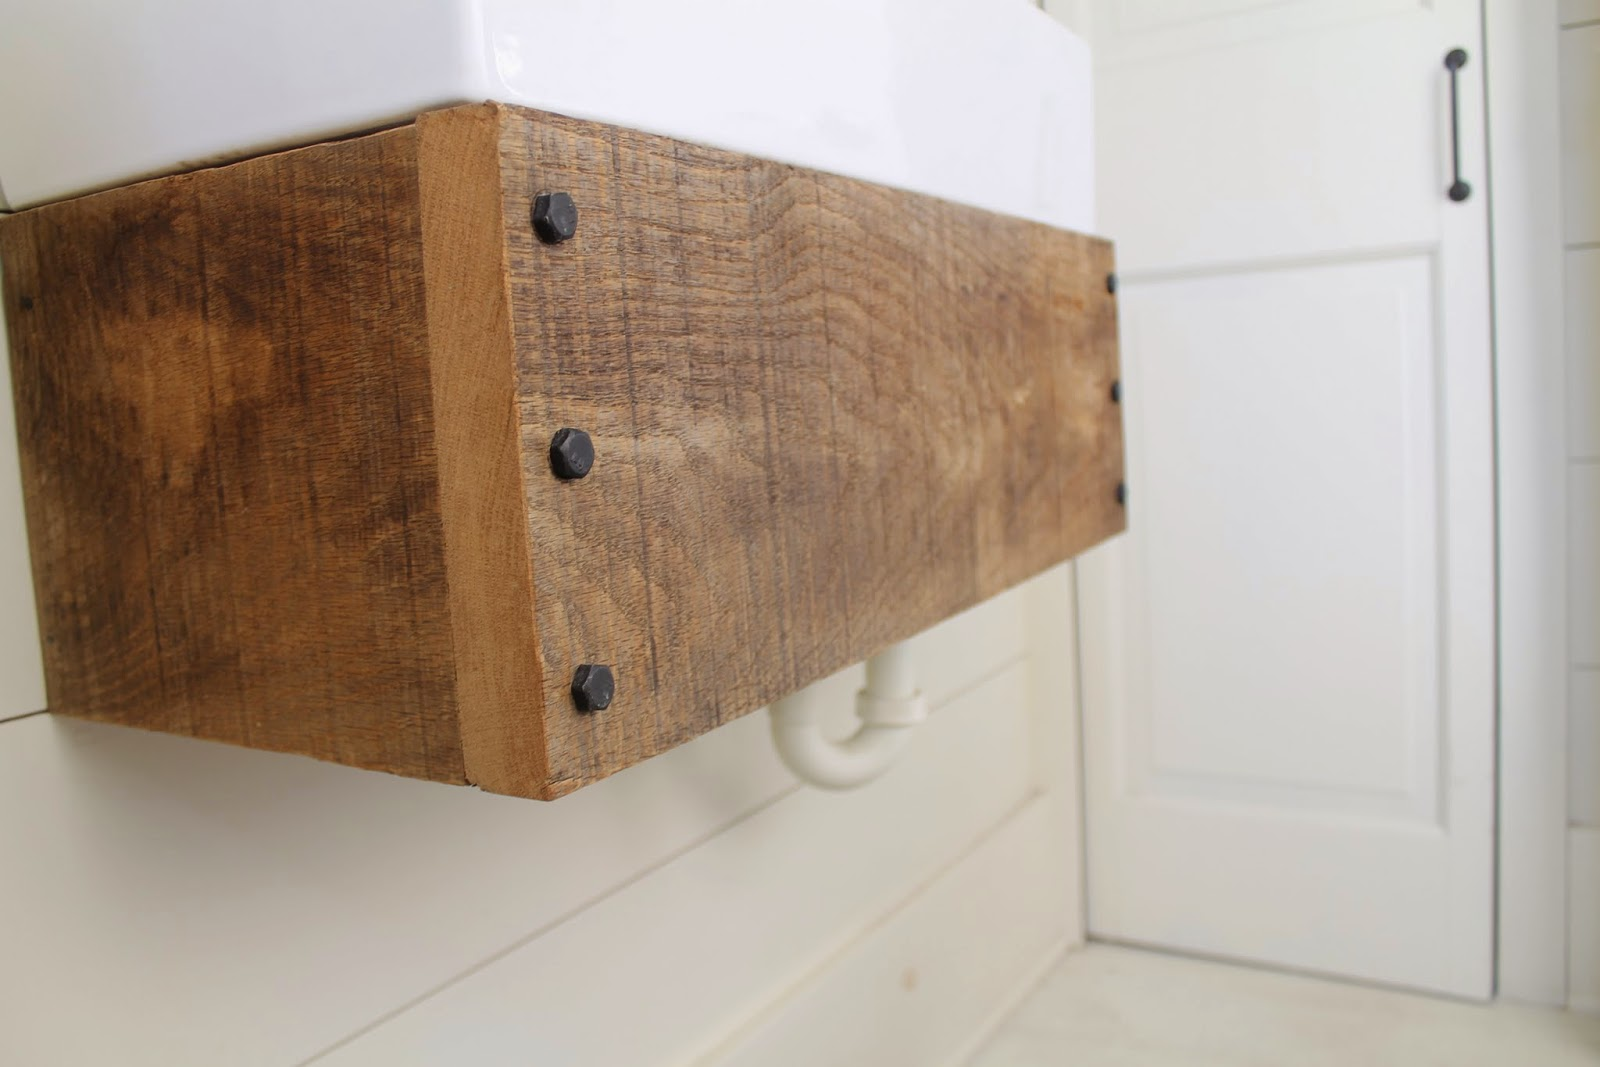 Use Reclaimed Wood To Make An Easy Floating Bathroom Vanity   Girl Meets  Carpenter Featured On